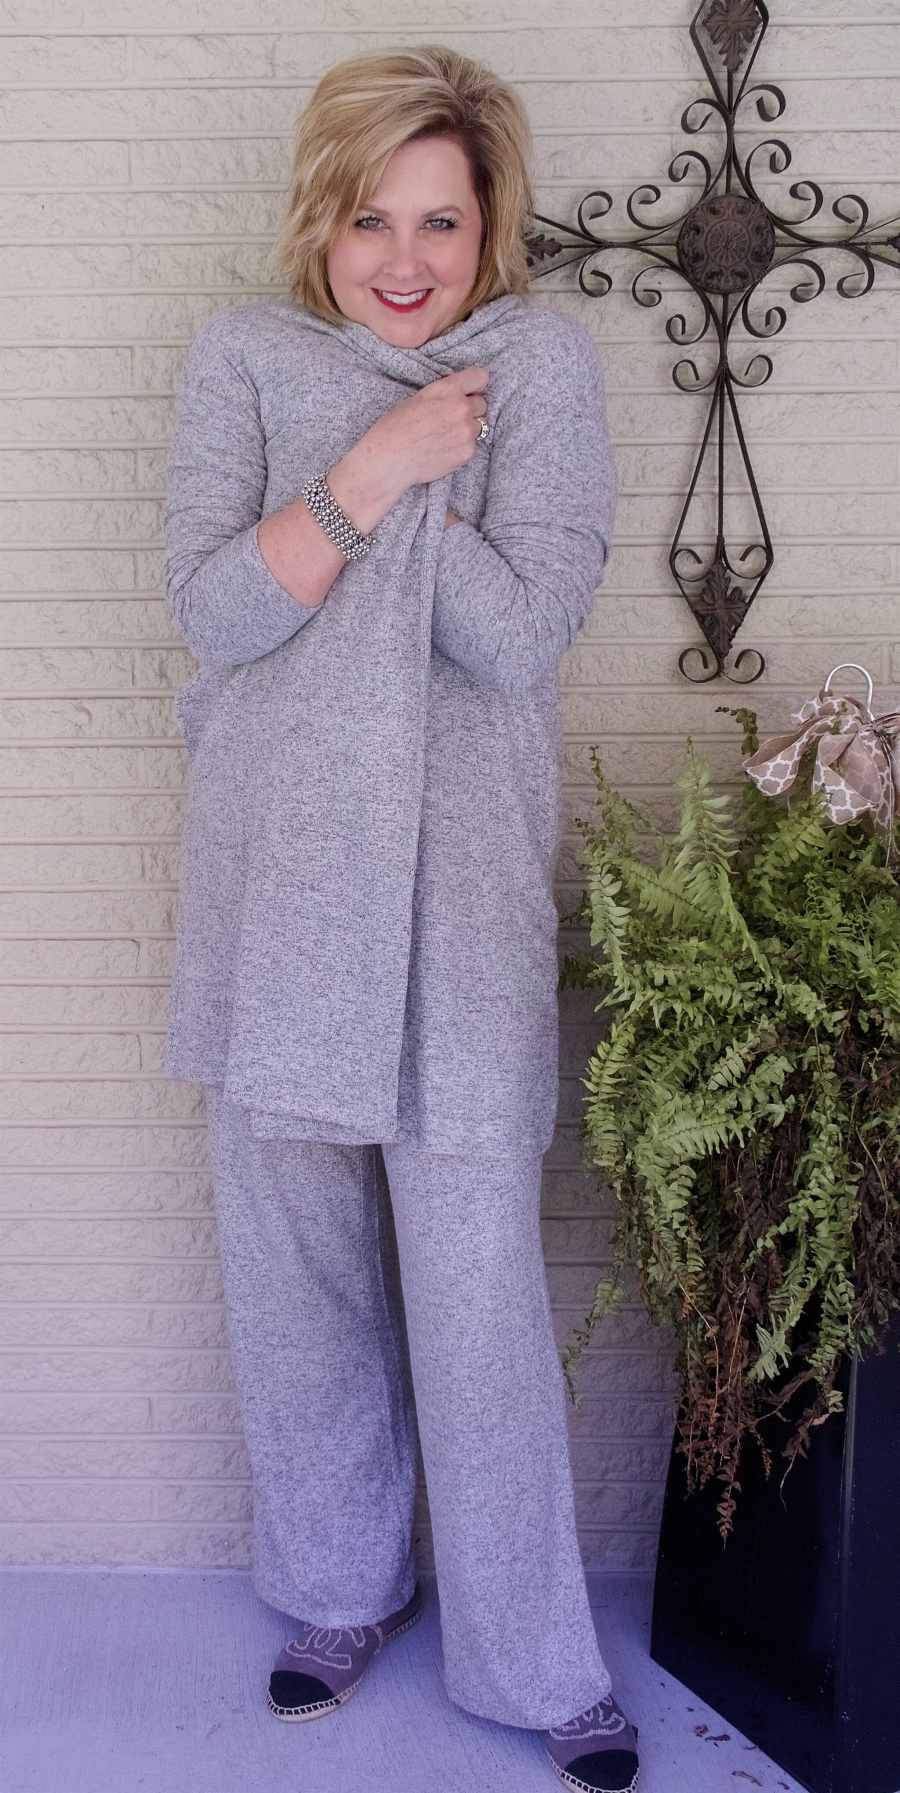 50 IS NOT OLD | LOUNGEWEAR FOR COMFORT